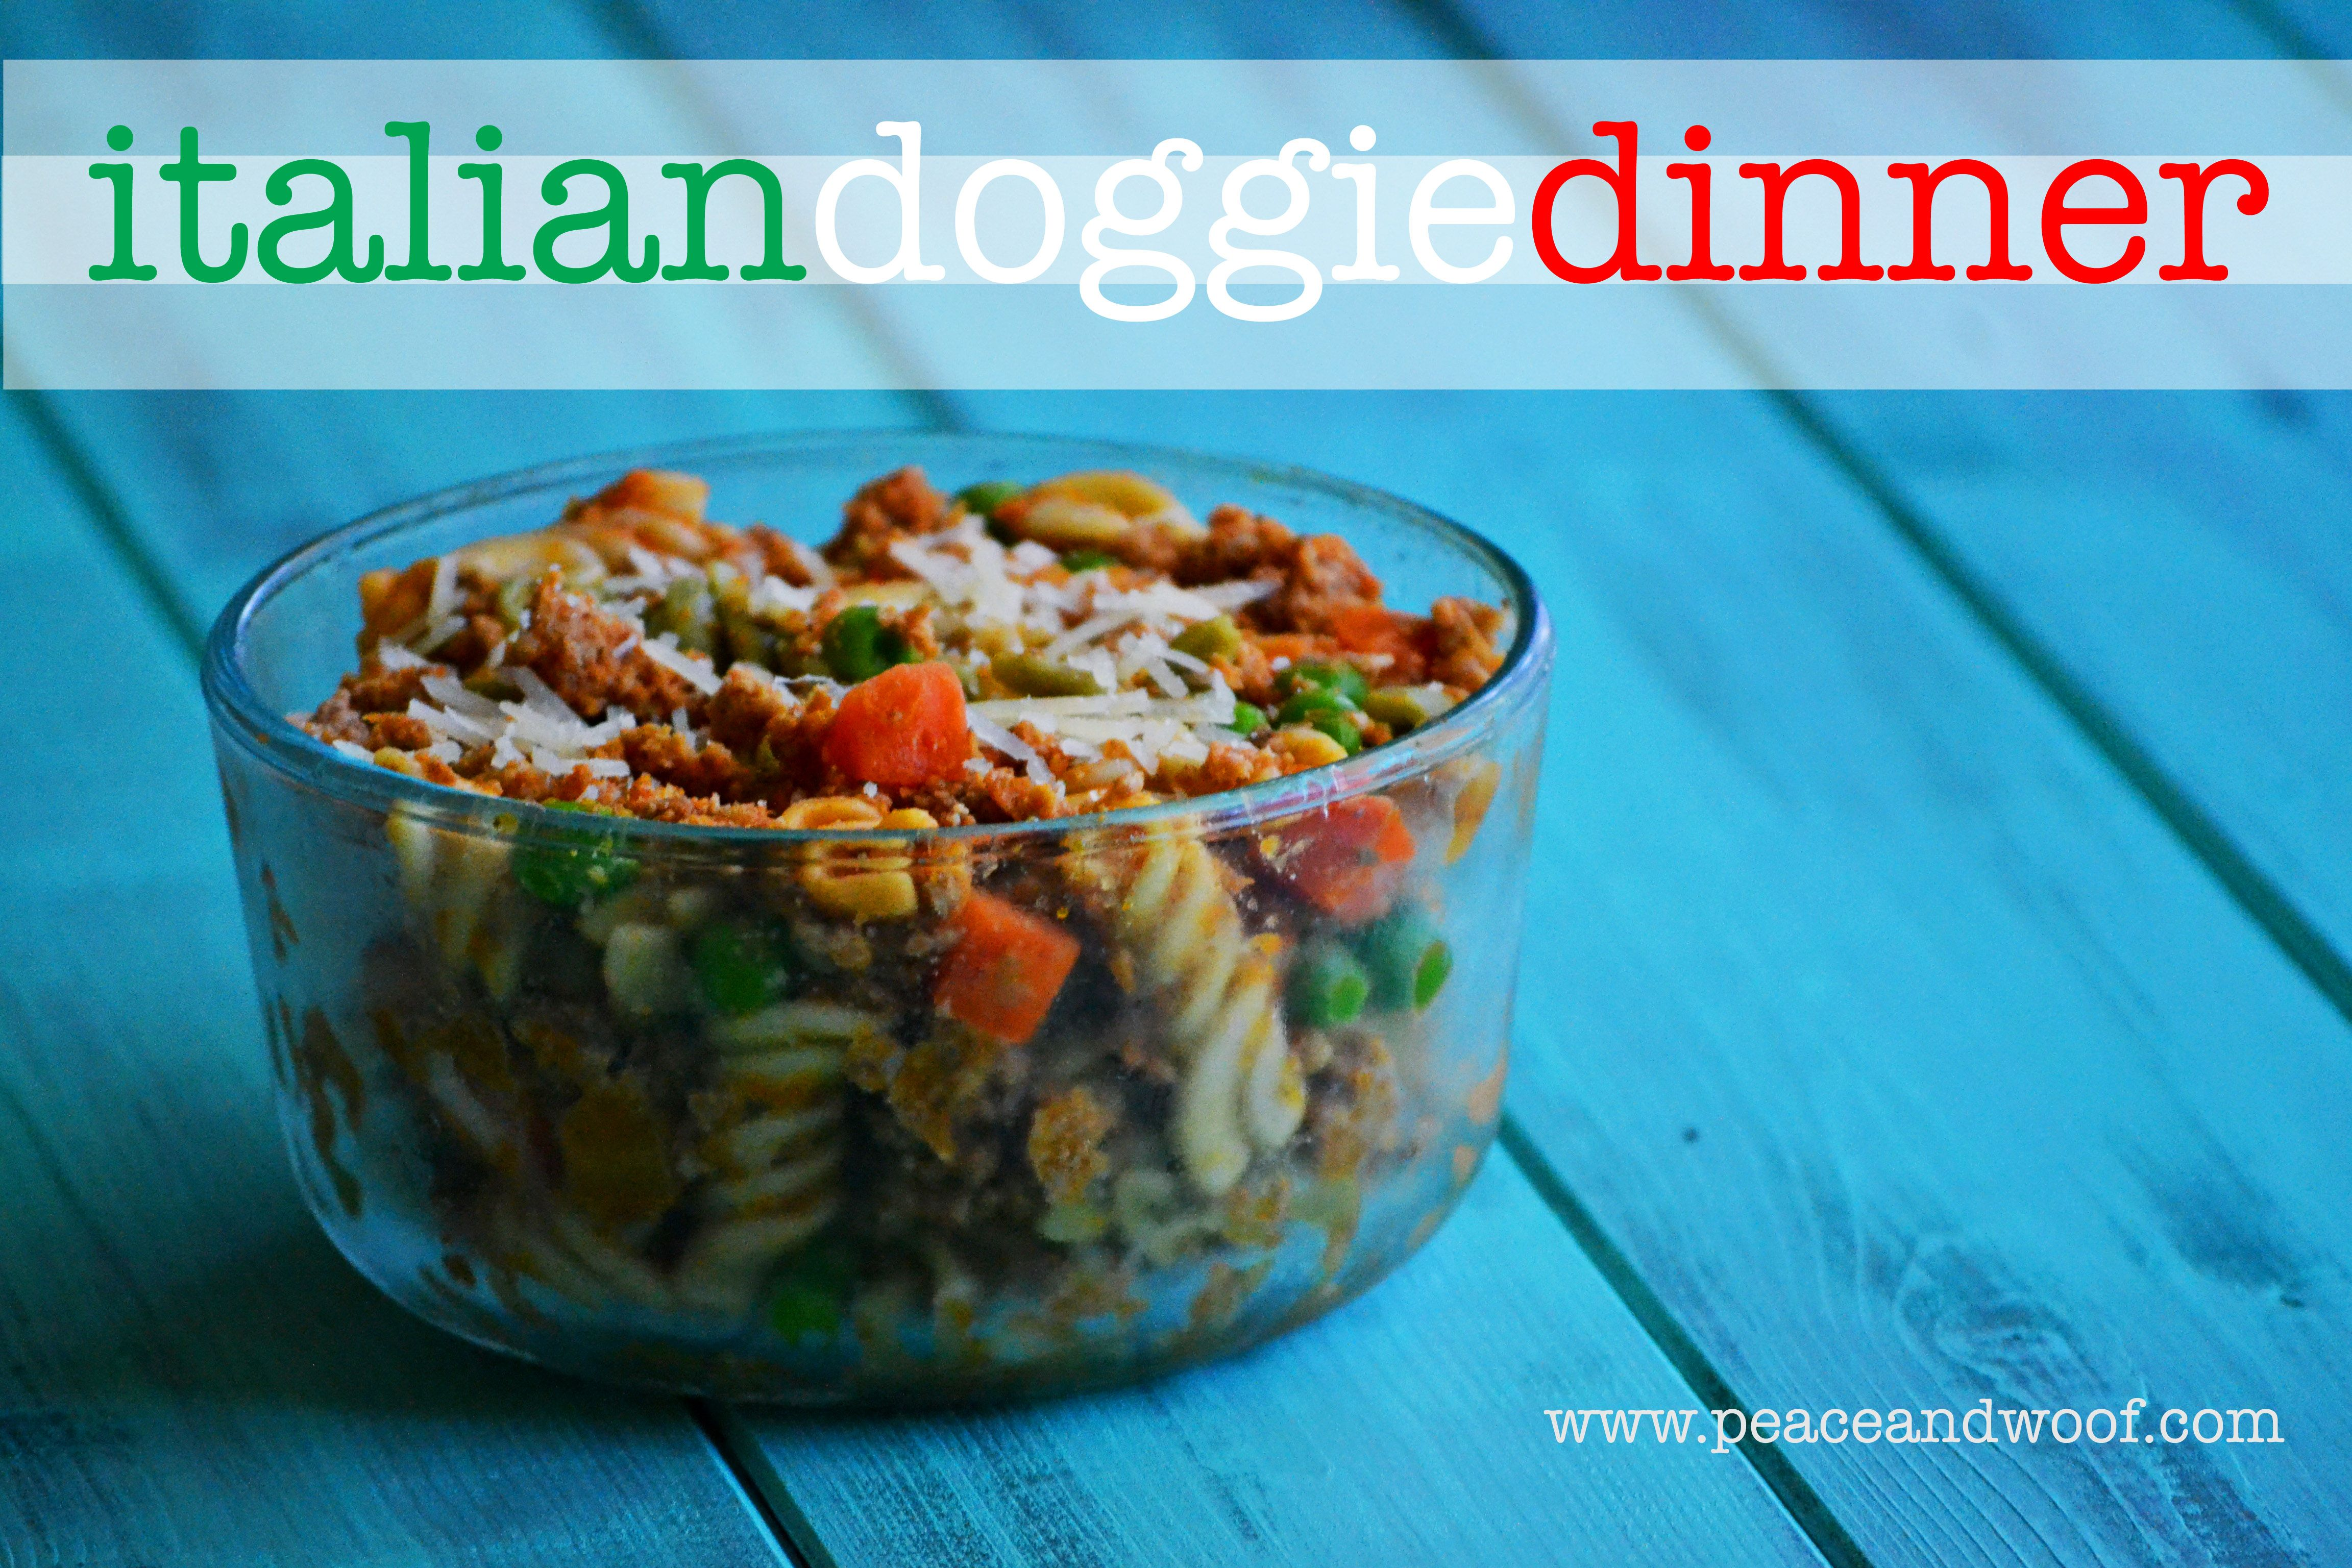 Easy dog food recipe italian doggie dinner peacewoof recipes easy dog food recipe italian doggie dinner forumfinder Image collections